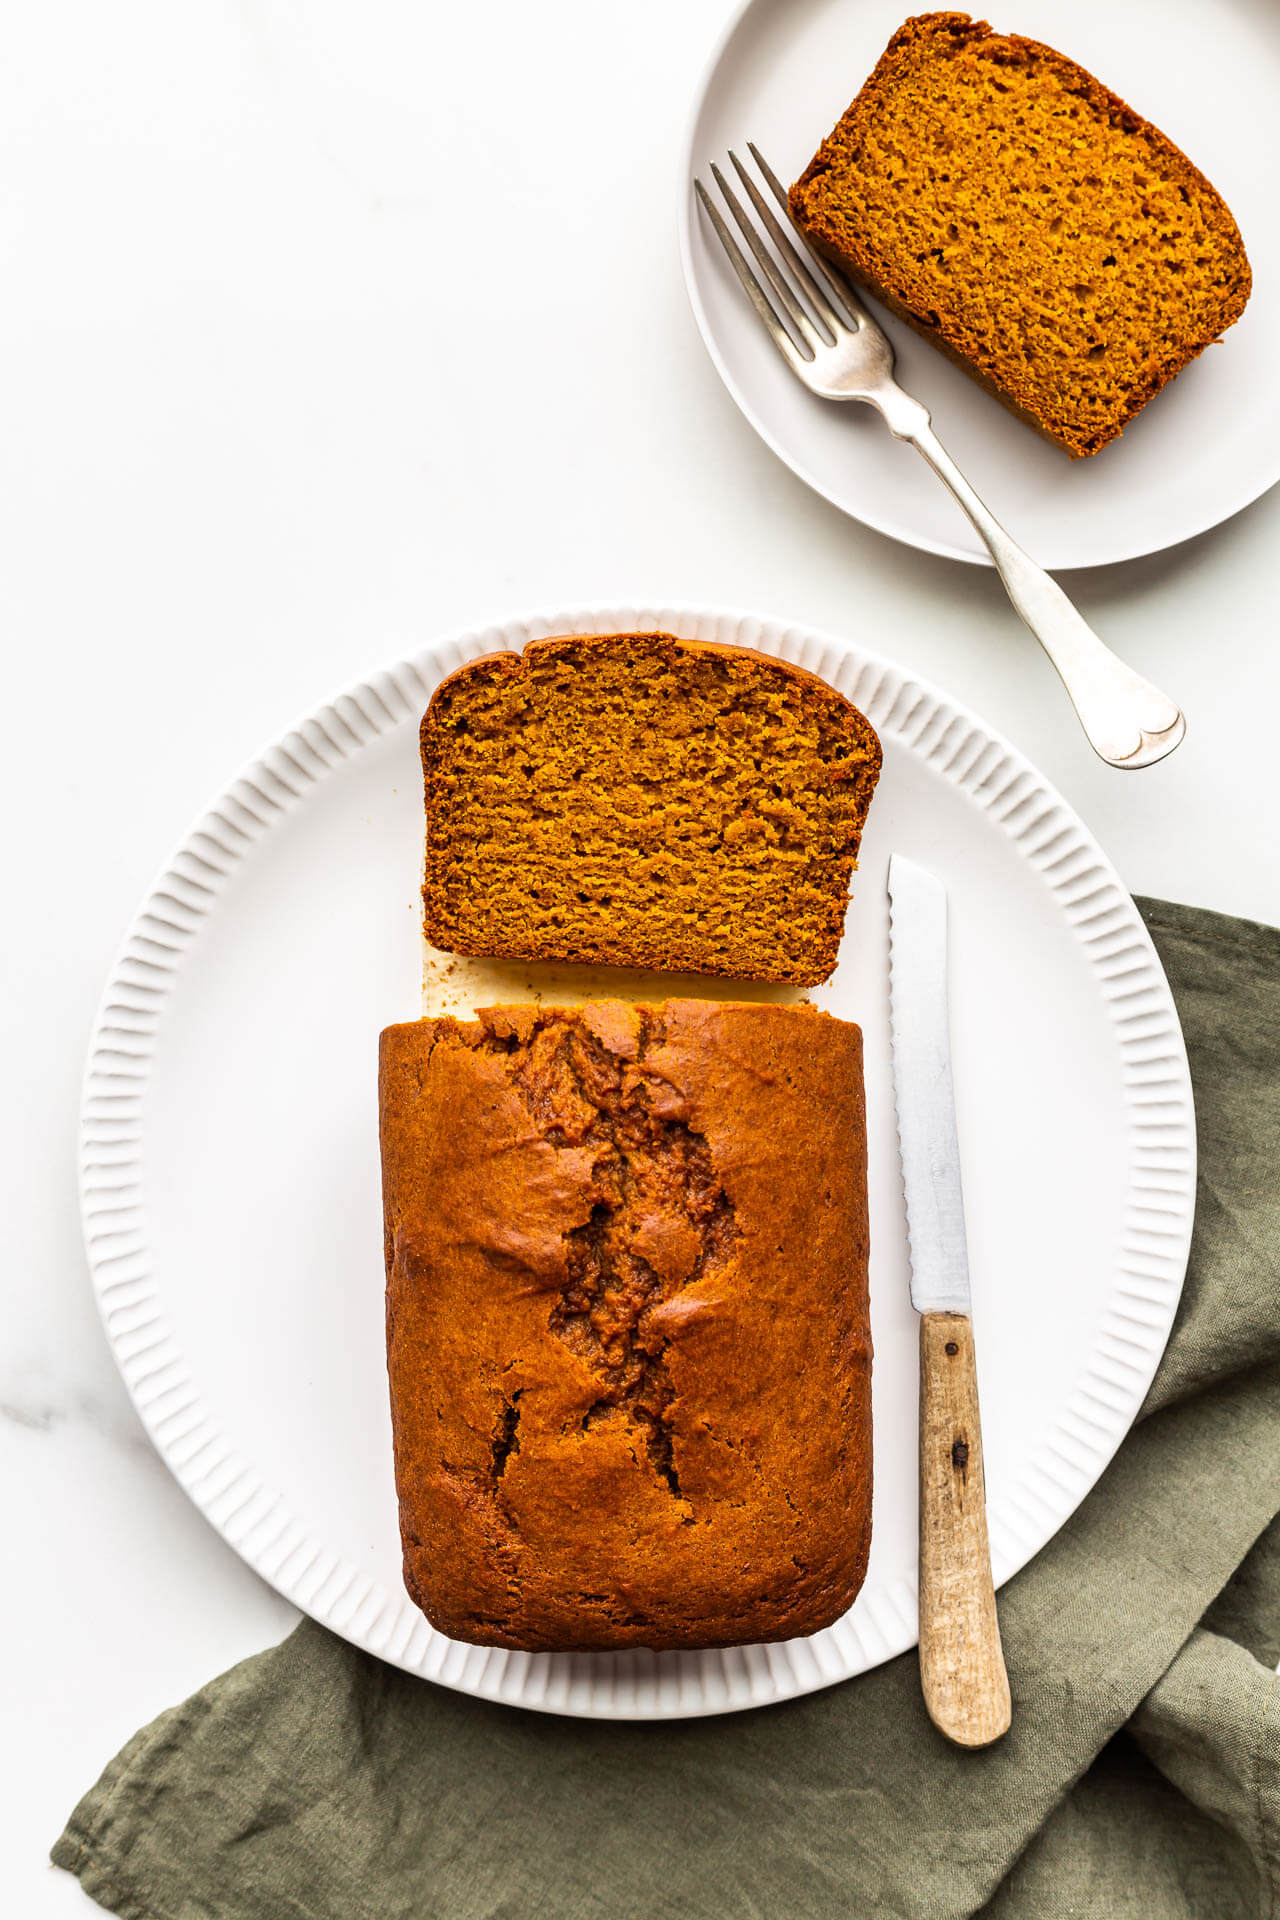 Slicing and serving a loaf of pumpkin bread.